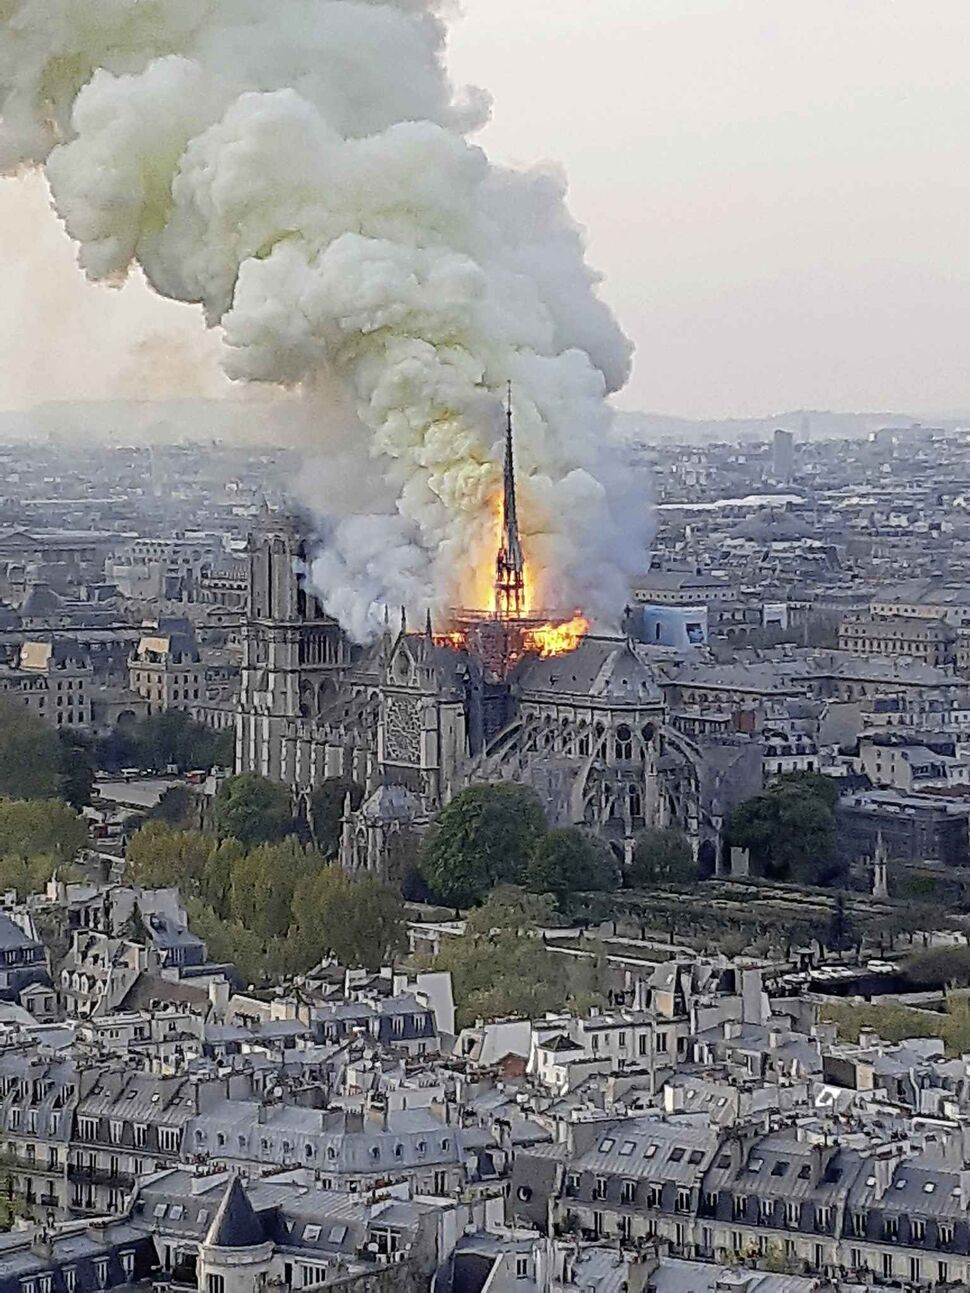 Flames and smoke rise from the blaze at Notre Dame cathedral in Paris, Monday. (Cedric Herpson  / The Associated Press)